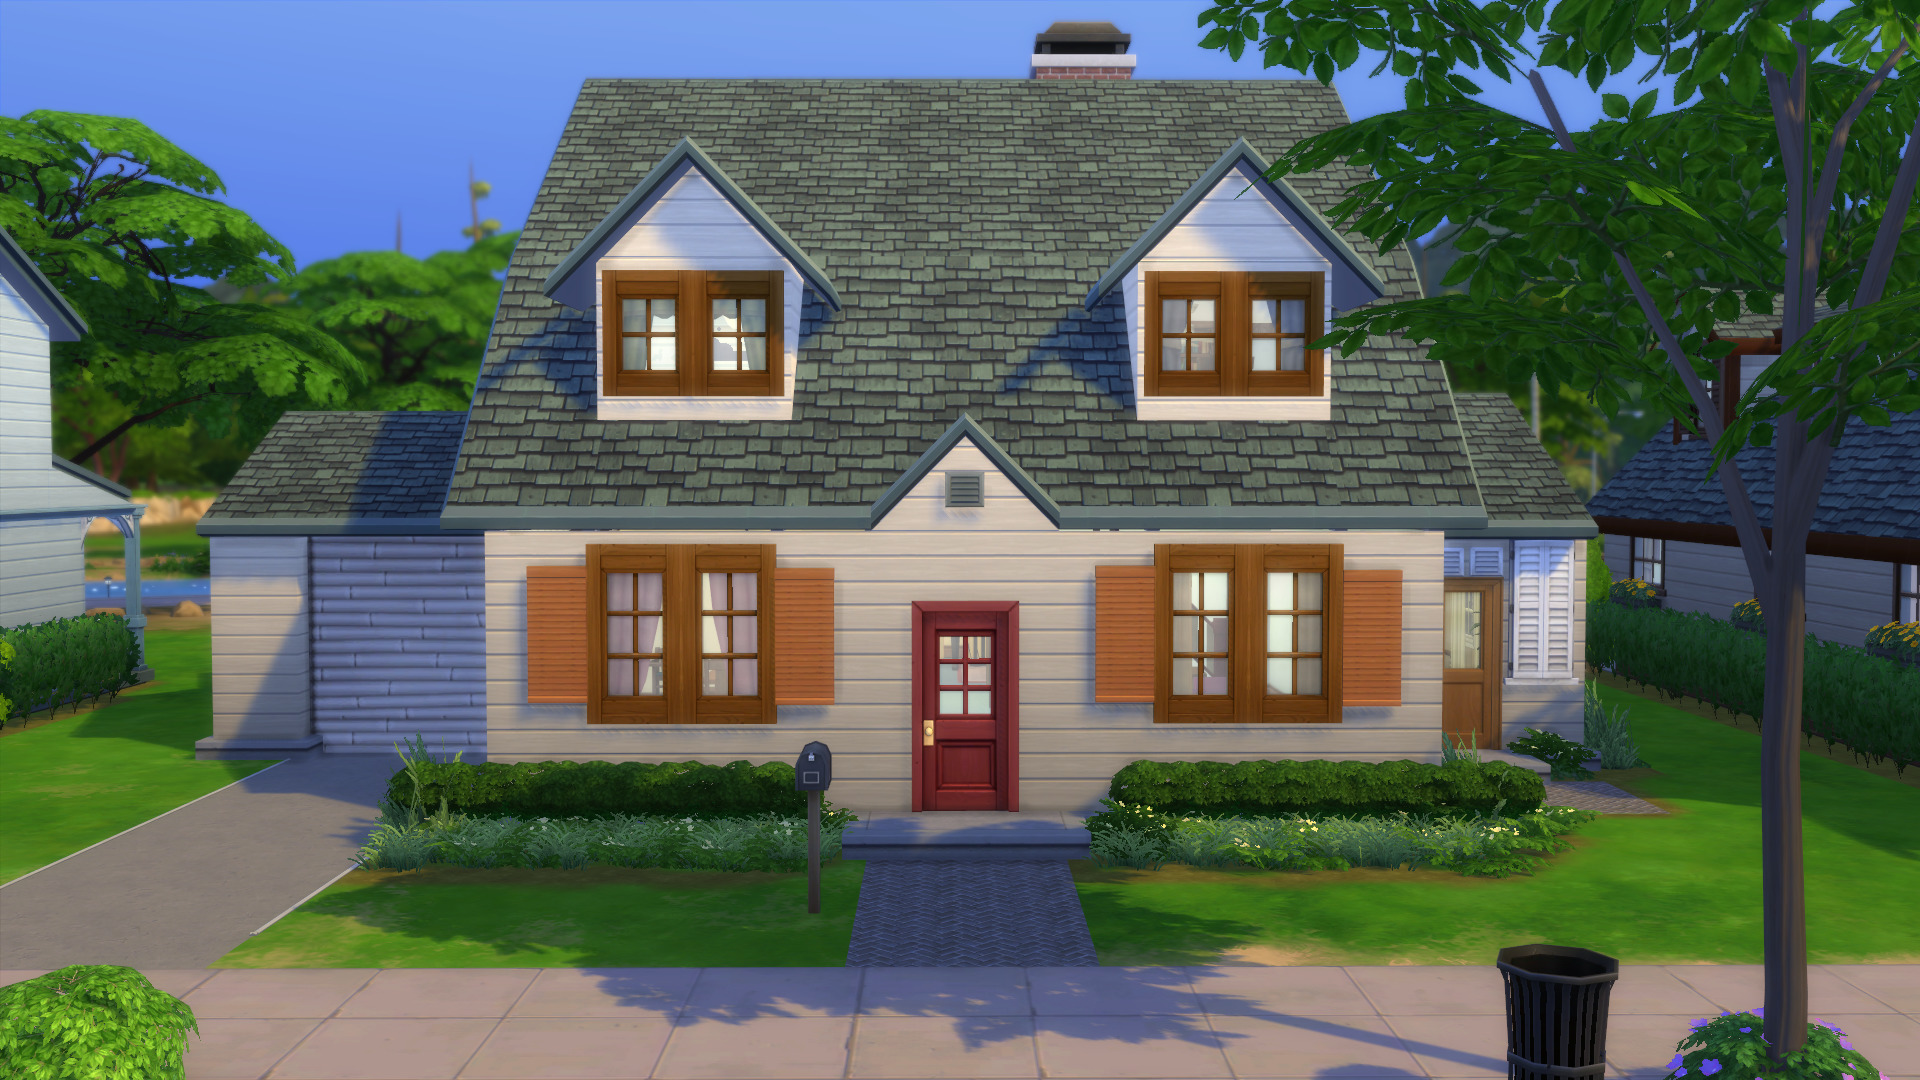 Mod The Sims - Family Guy House (The Sims 4) (Five Houses)